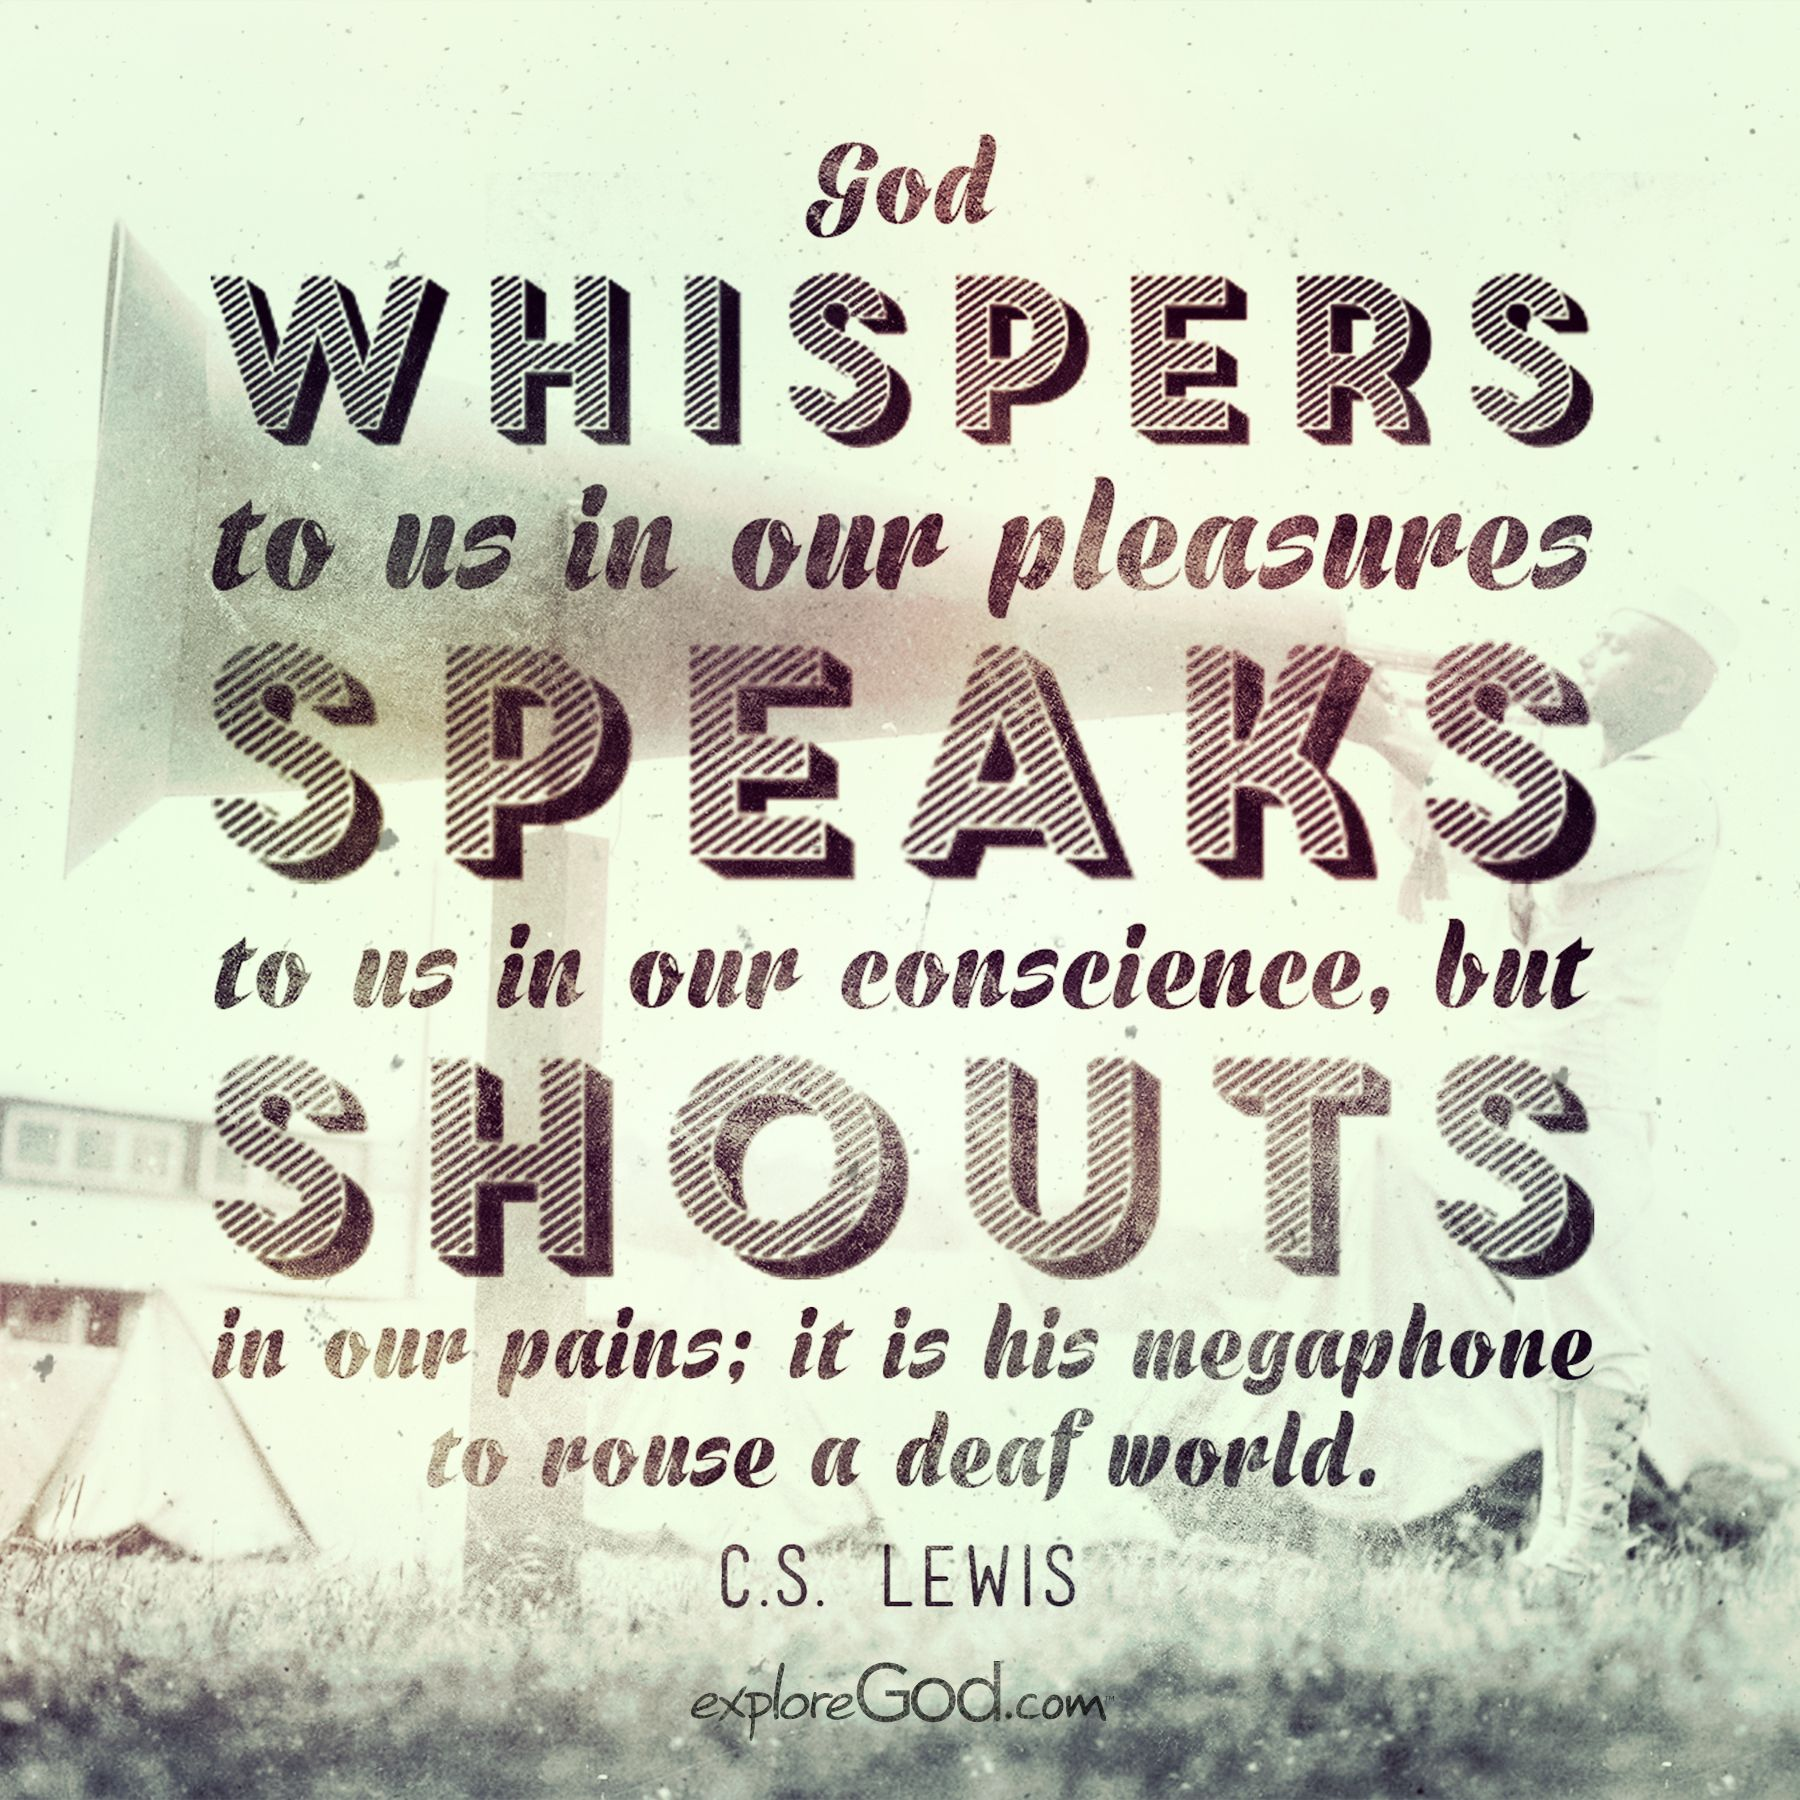 """""""God whispers to us in our pleasures, speaks to us in our conscience, but shouts in our pains; it is his megaphone to rouse a deaf world."""" - C.S. Lewis"""